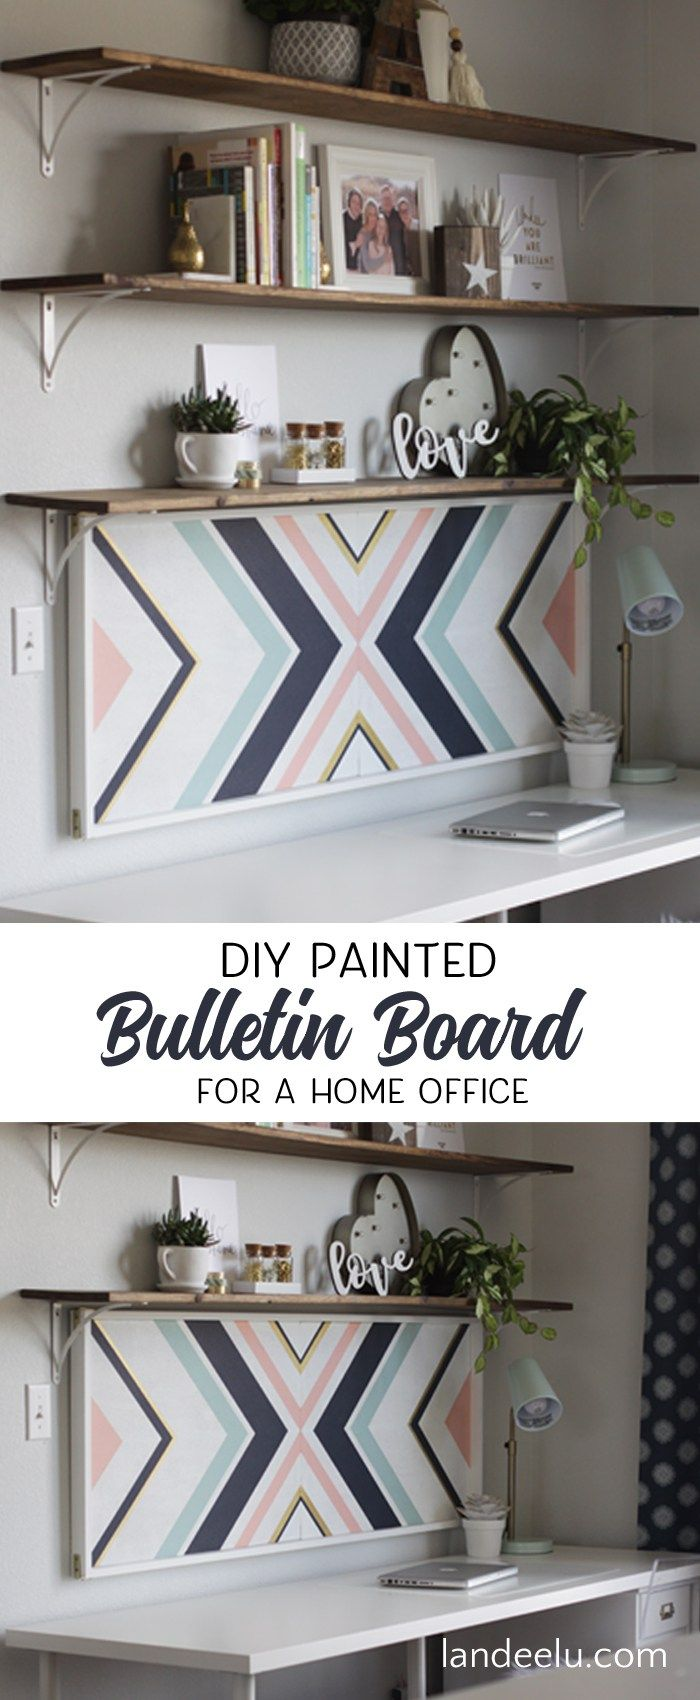 25+ unique Diy cork board ideas on Pinterest | Cork boards, Diy ...